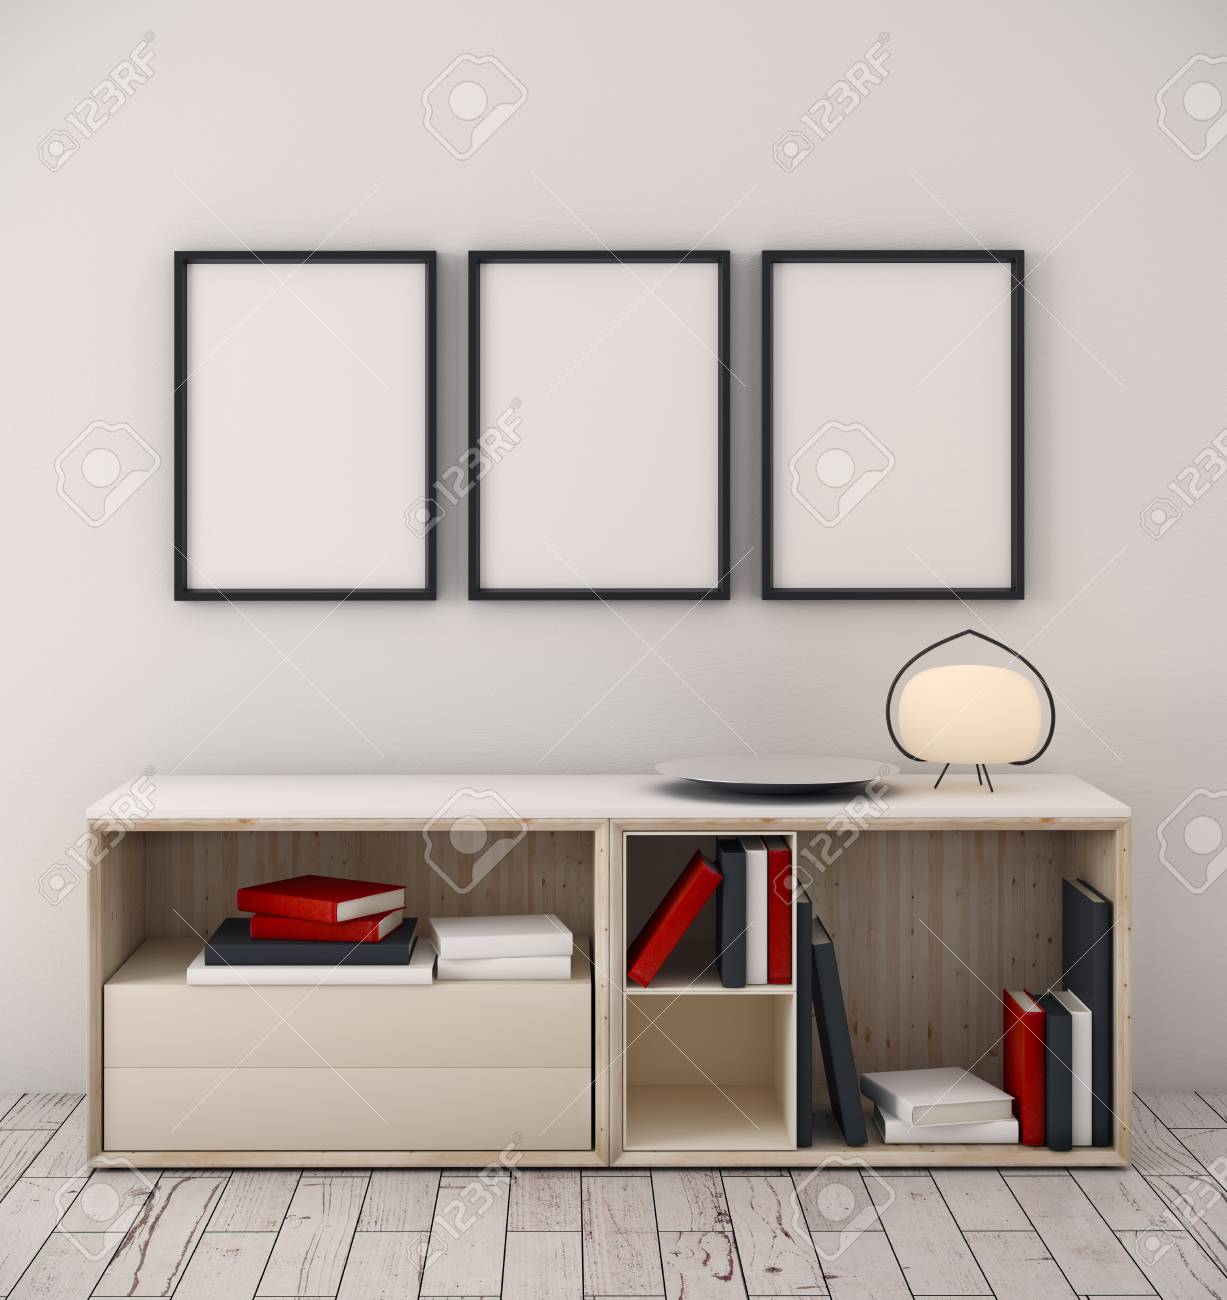 Minimalistic Room Interior With Items On Cabinet And Empty Picture ...